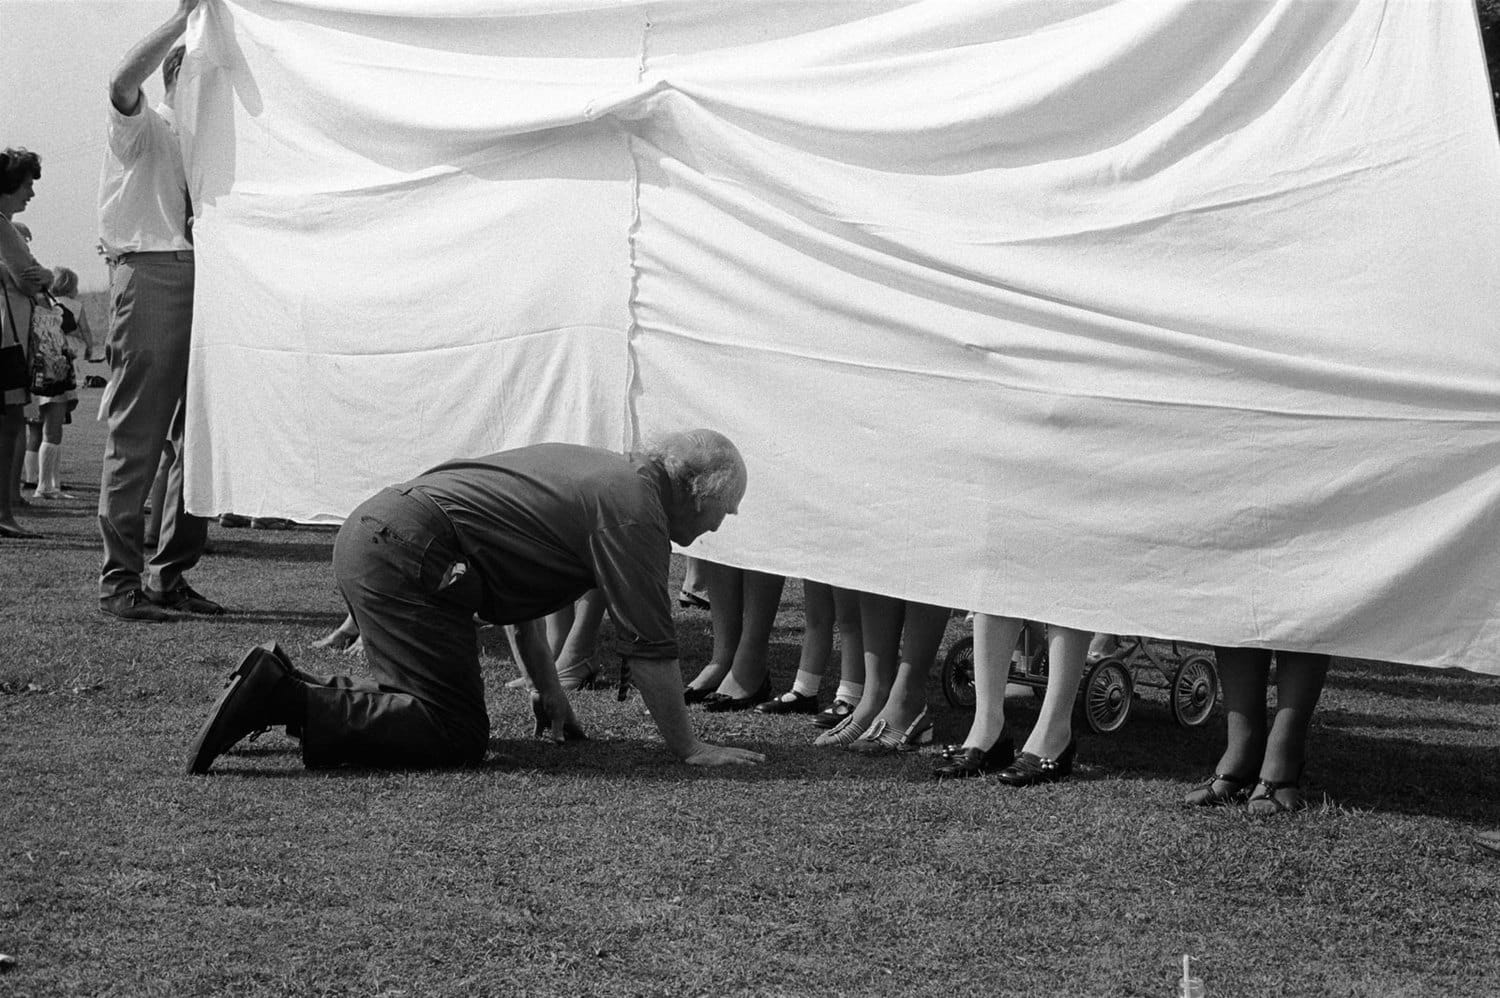 Homer Sykes, Village fete, prettiest ankles competition, Marhamchurch, Cornwall, 1970